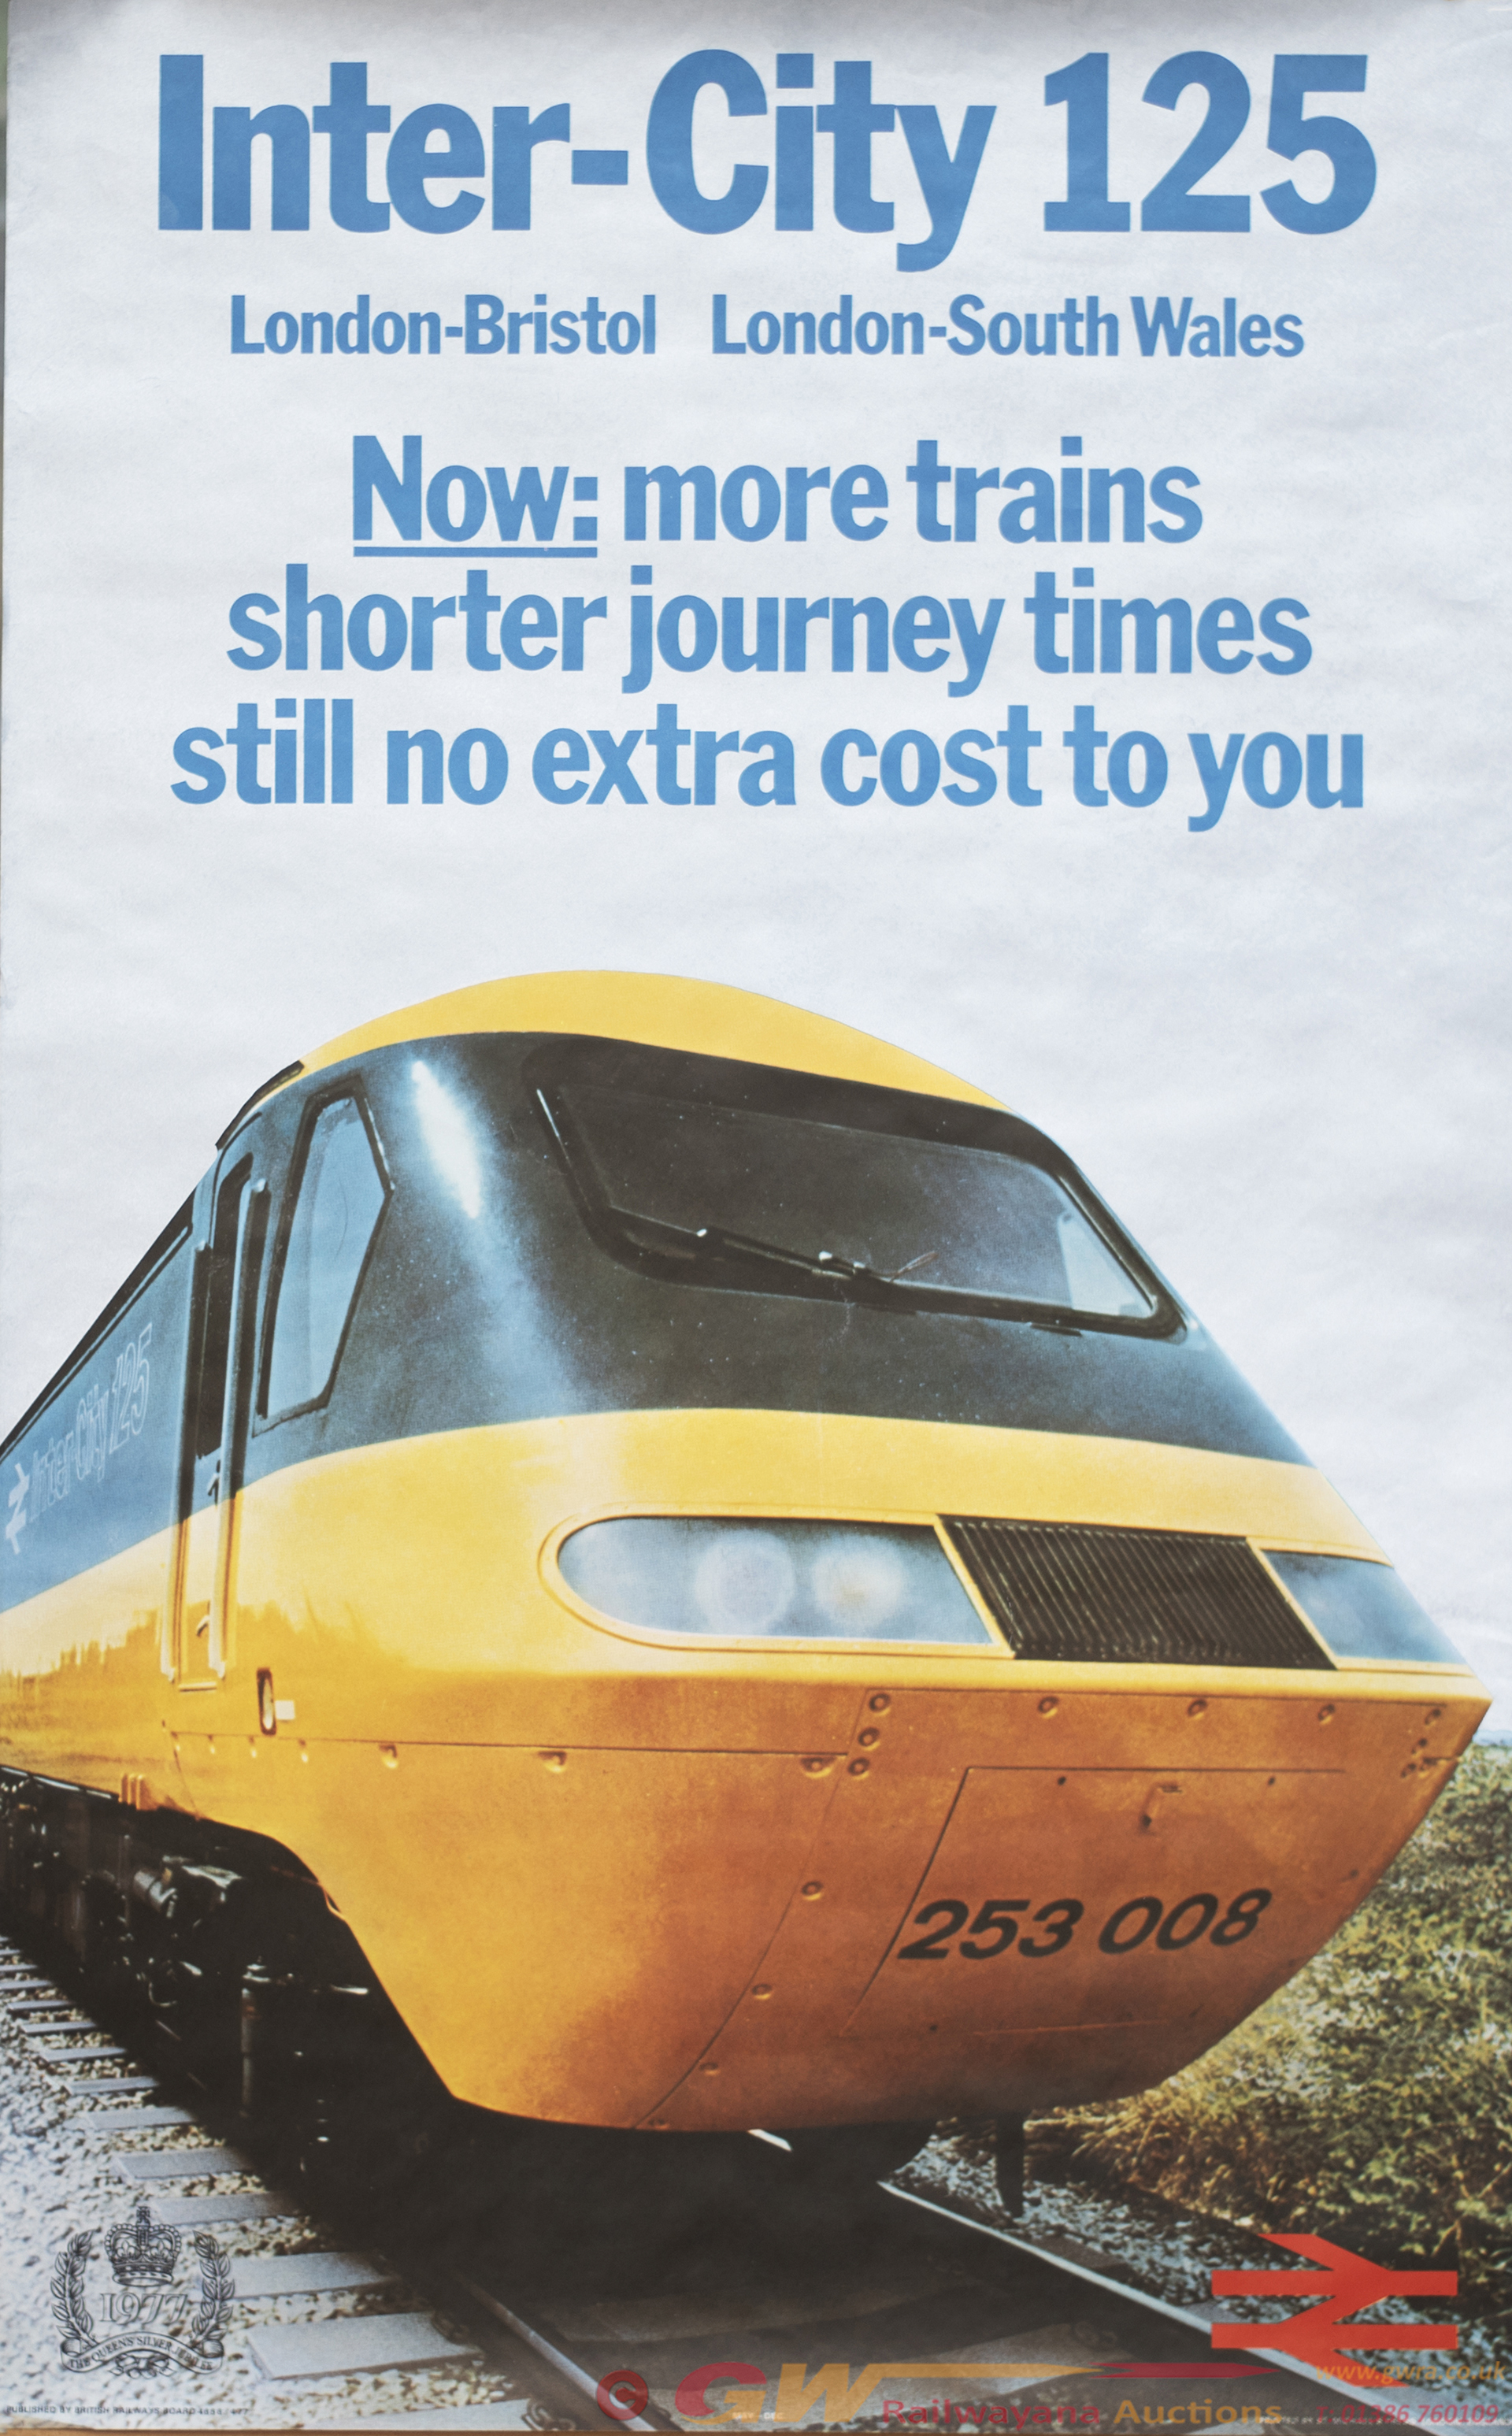 Poster BR INTER CITY 125 With Image Of HST Power